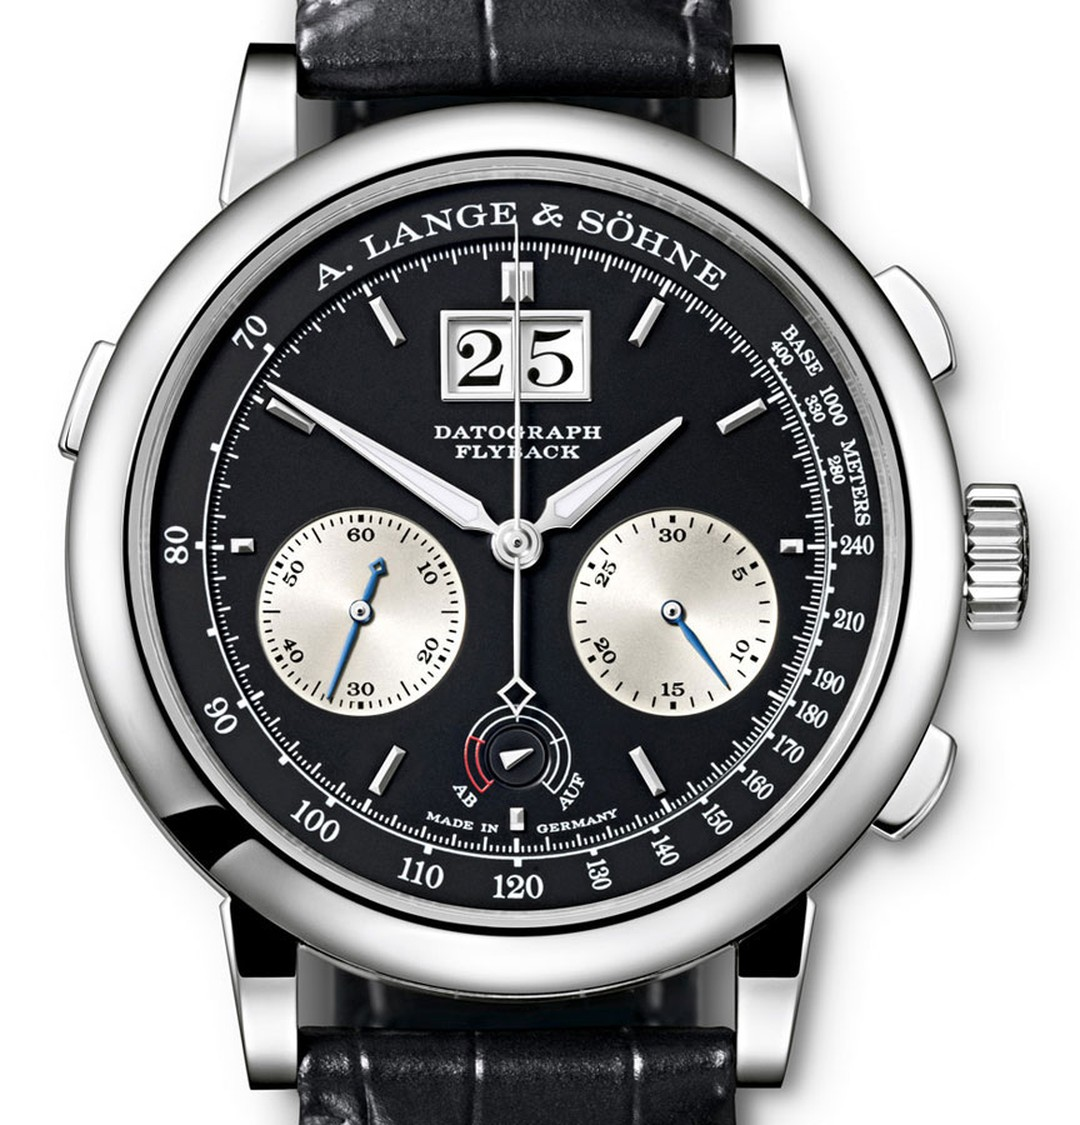 Lange-&-Sohne-Datograph-Up_Down-Platinum-flyback-chronograph,-60-hour-power-reserve-and-proprietary-oscillation-system-POA